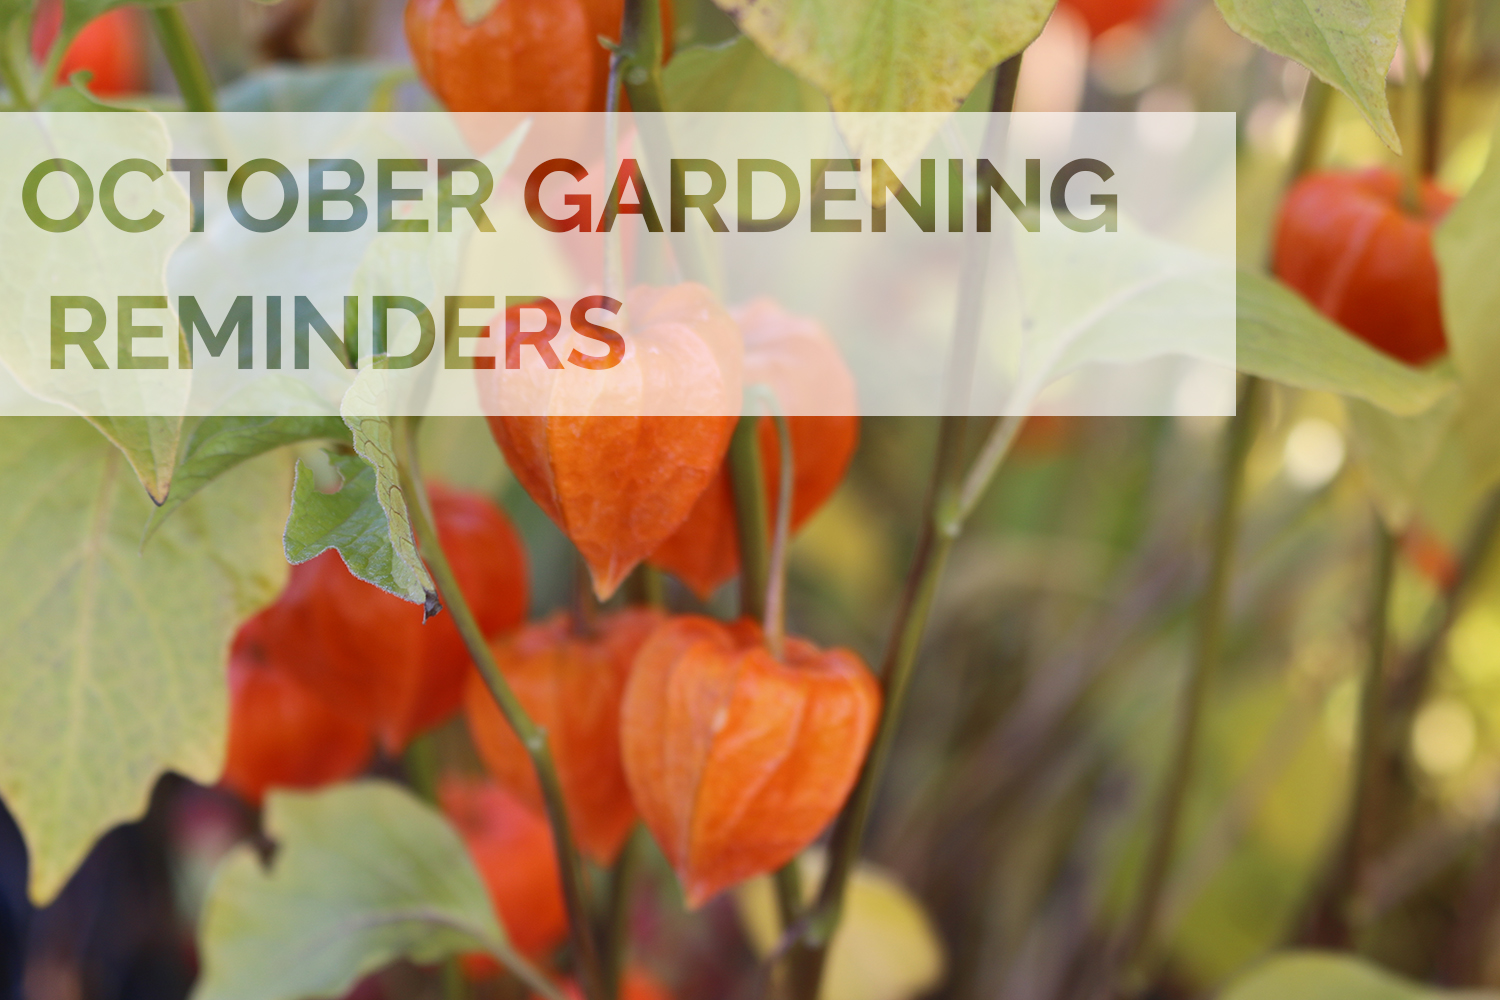 Jobs to do in the garden this October